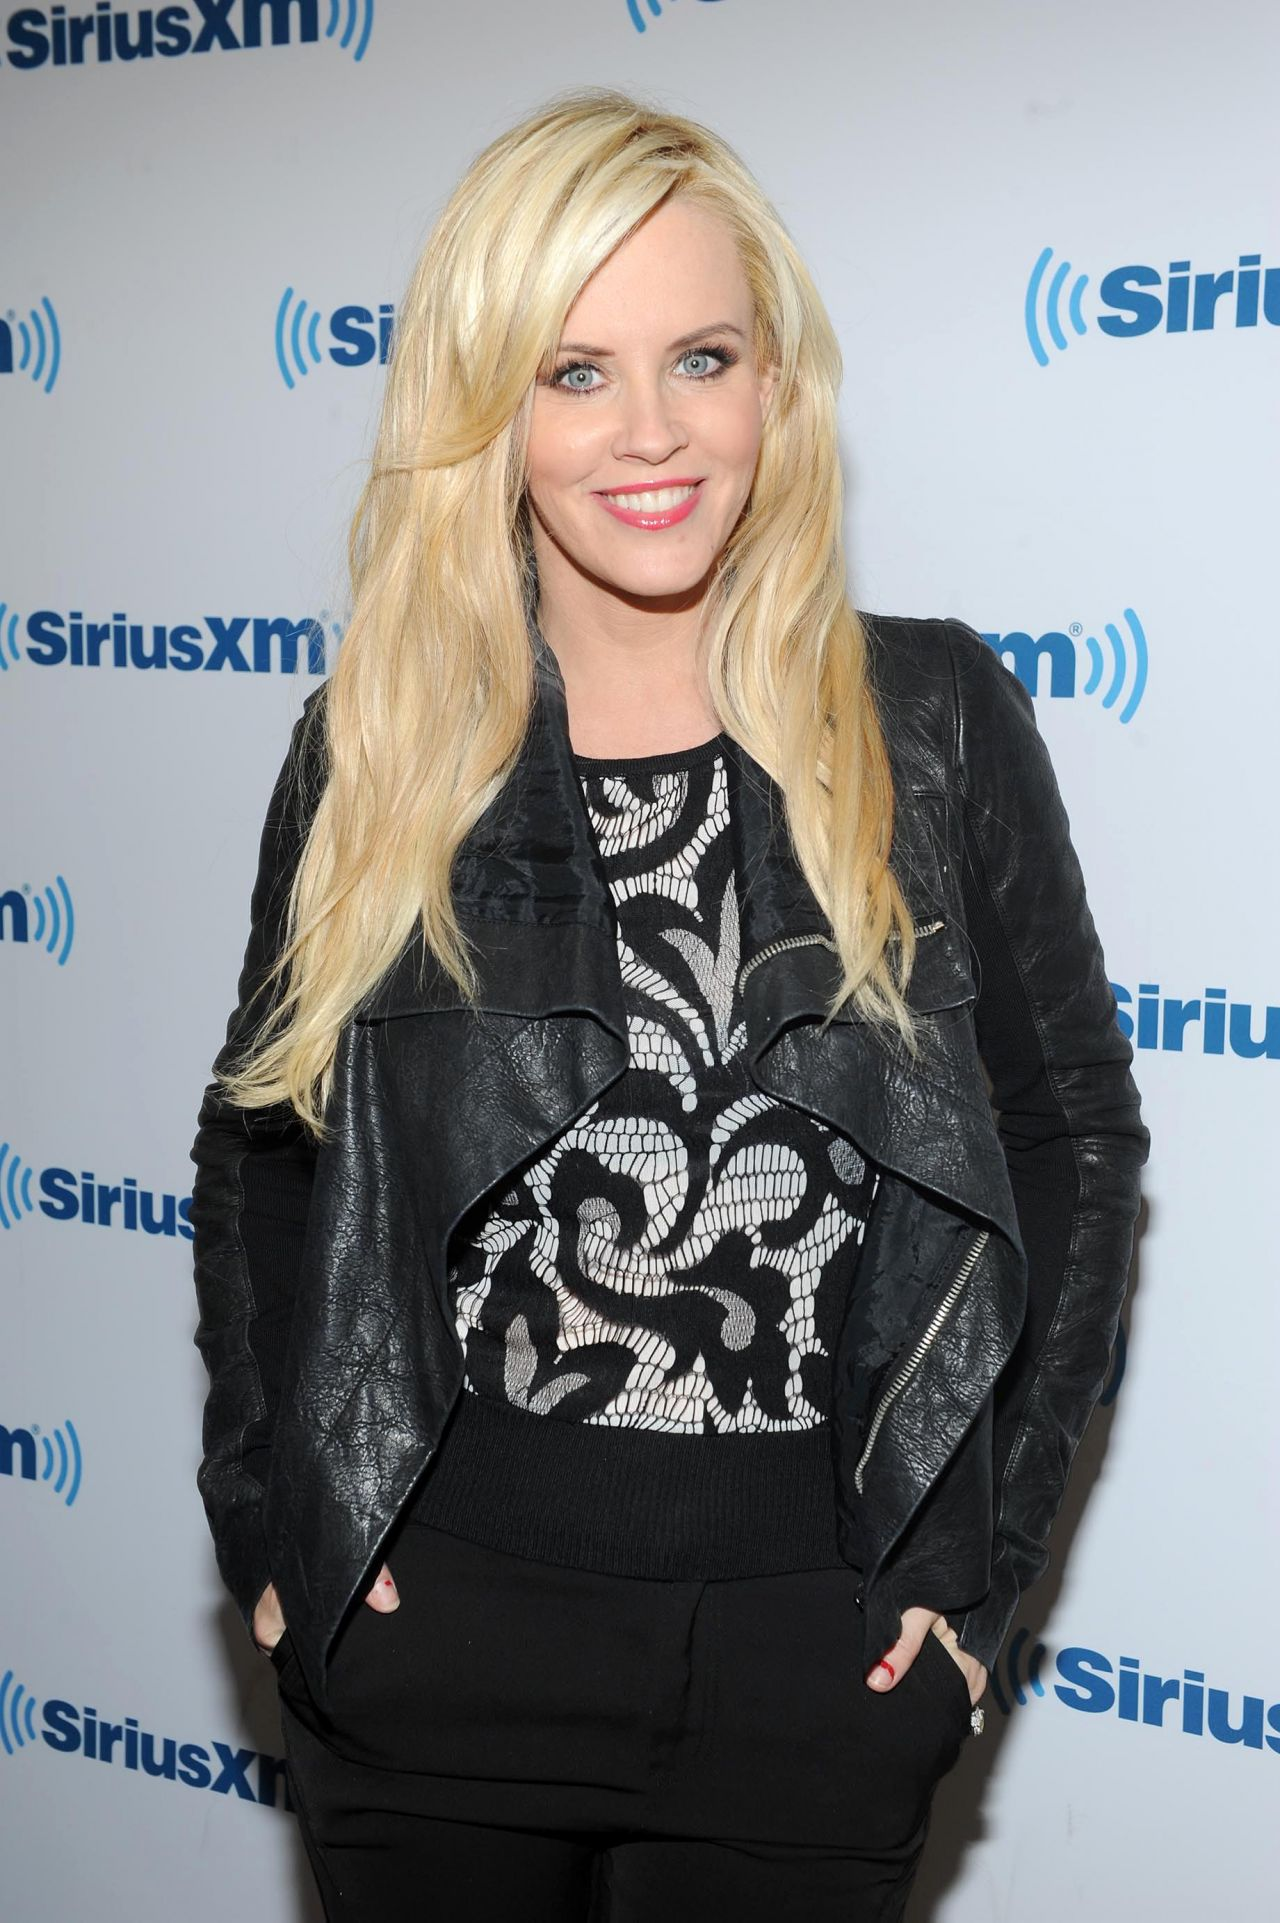 Jenny McCarthy at SiriusXM Studios in New York City, March 2015